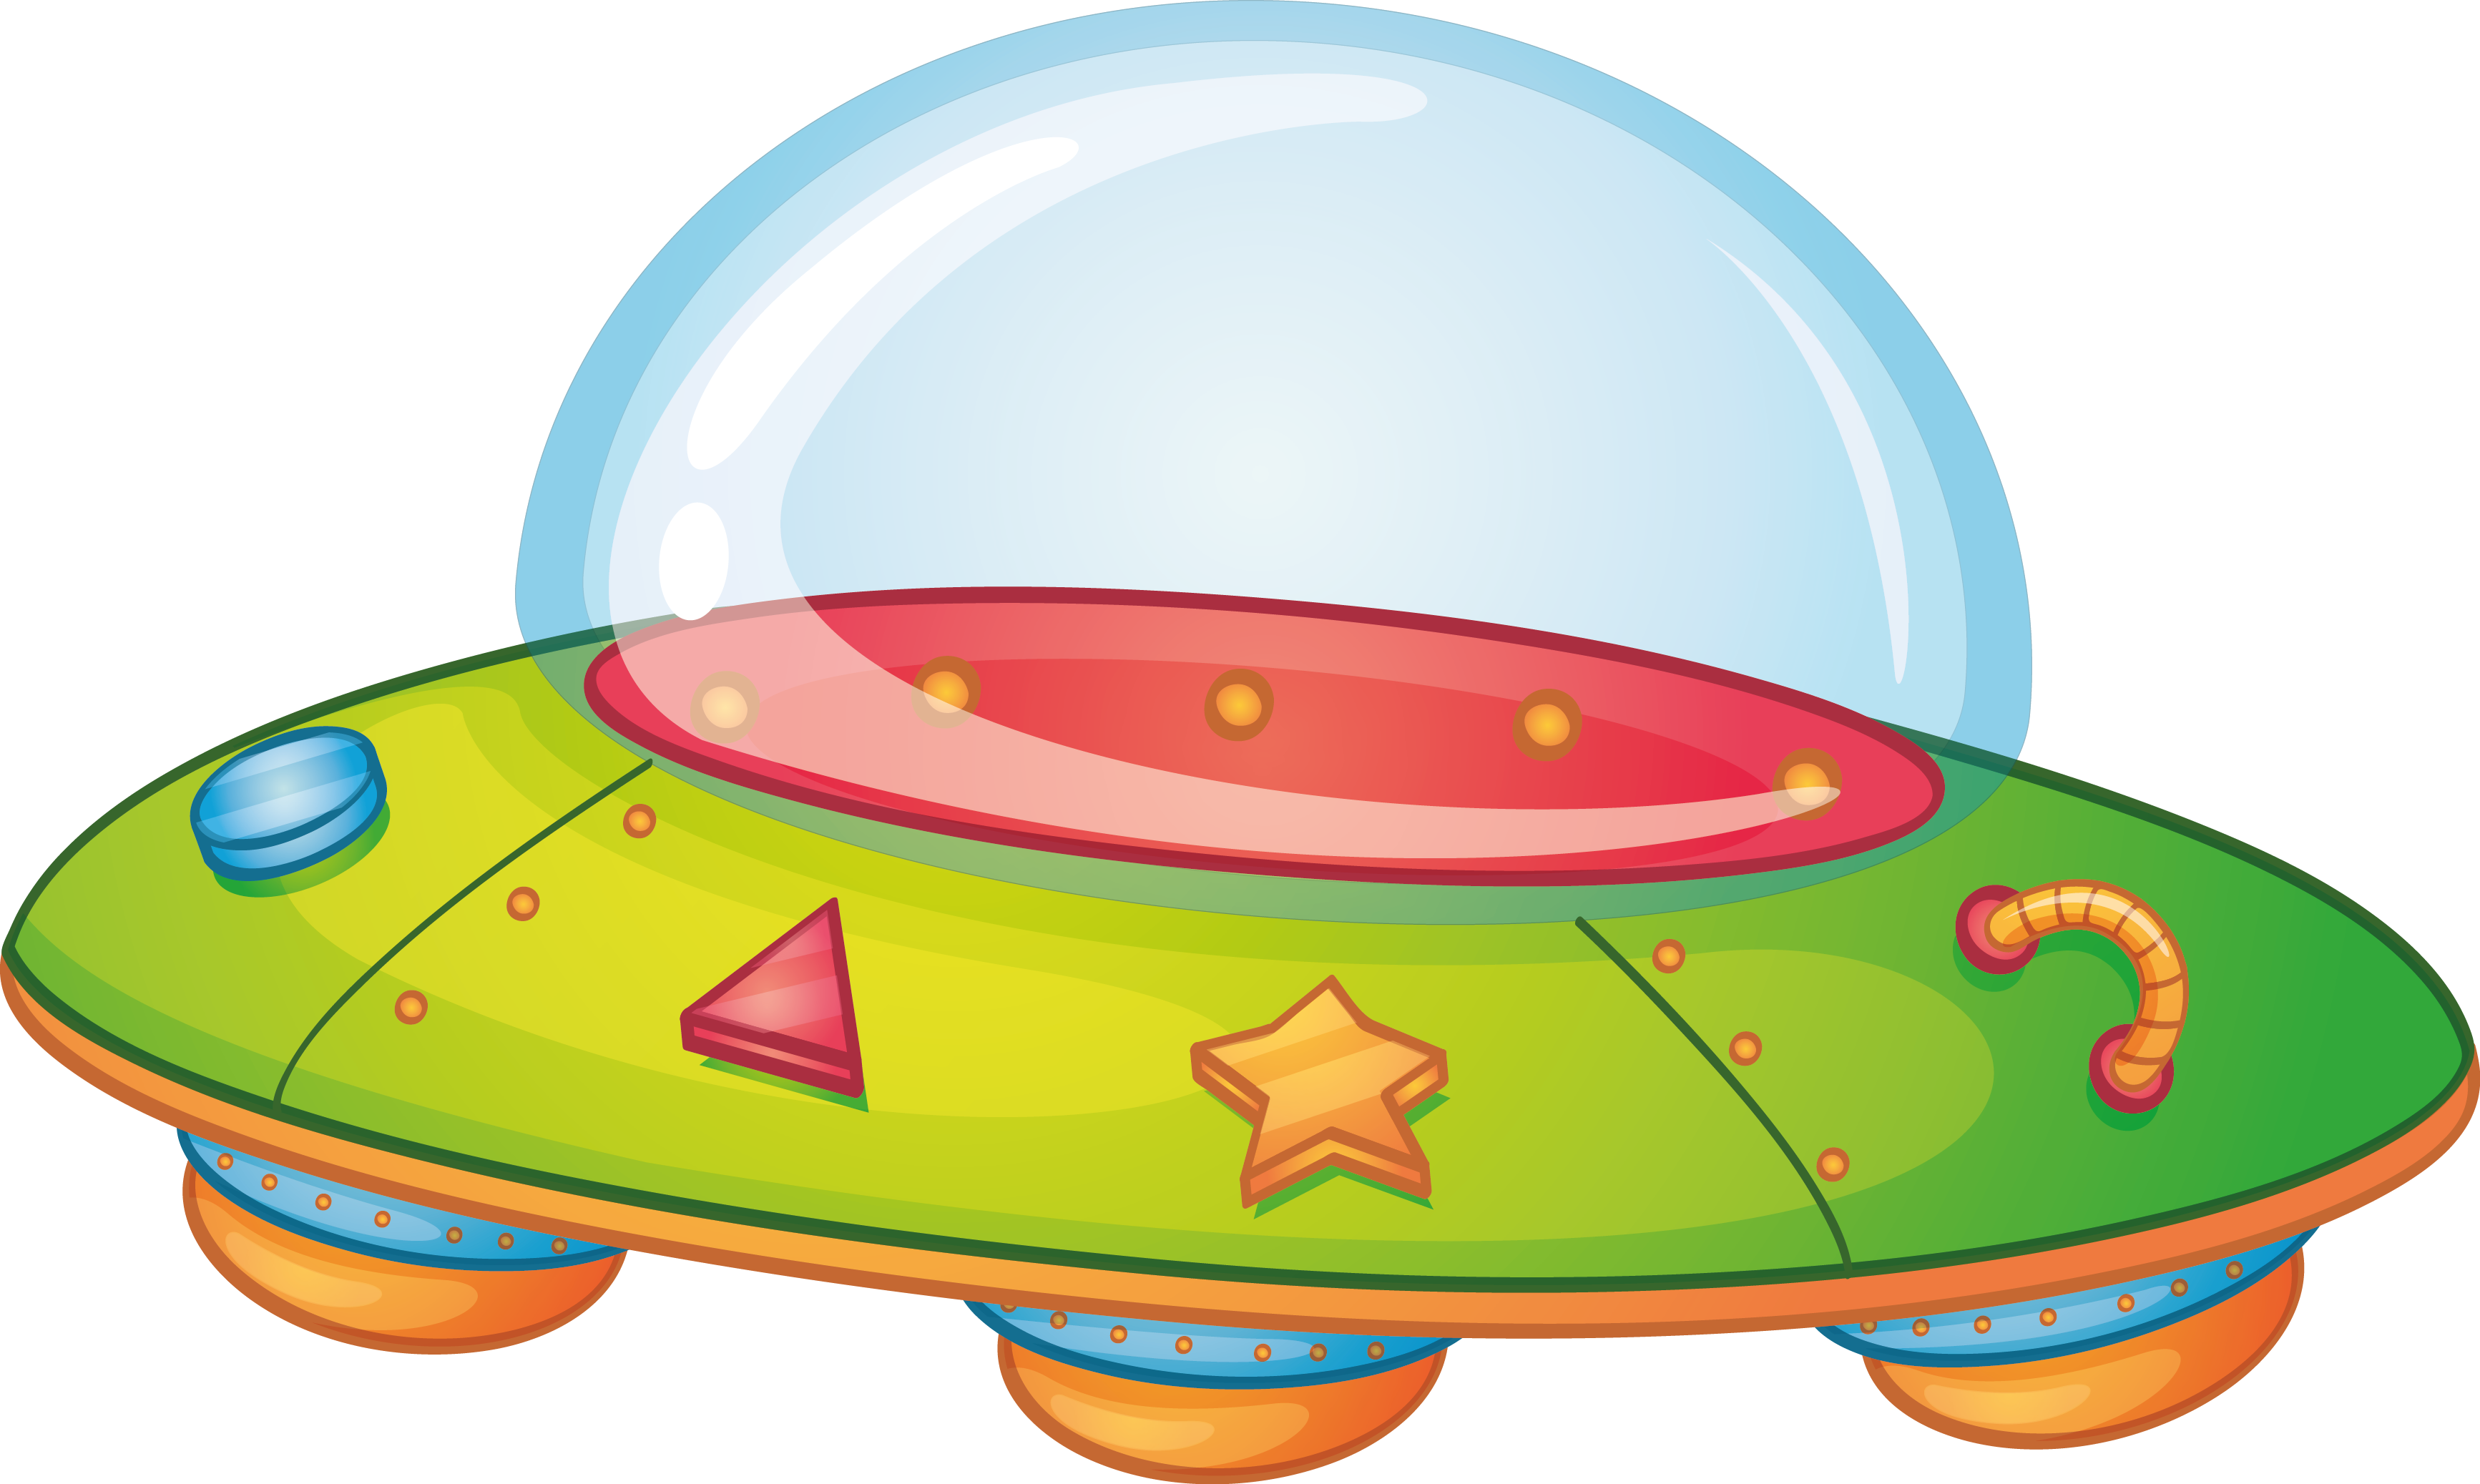 Ufo clipart roswell. Incident unidentified flying object